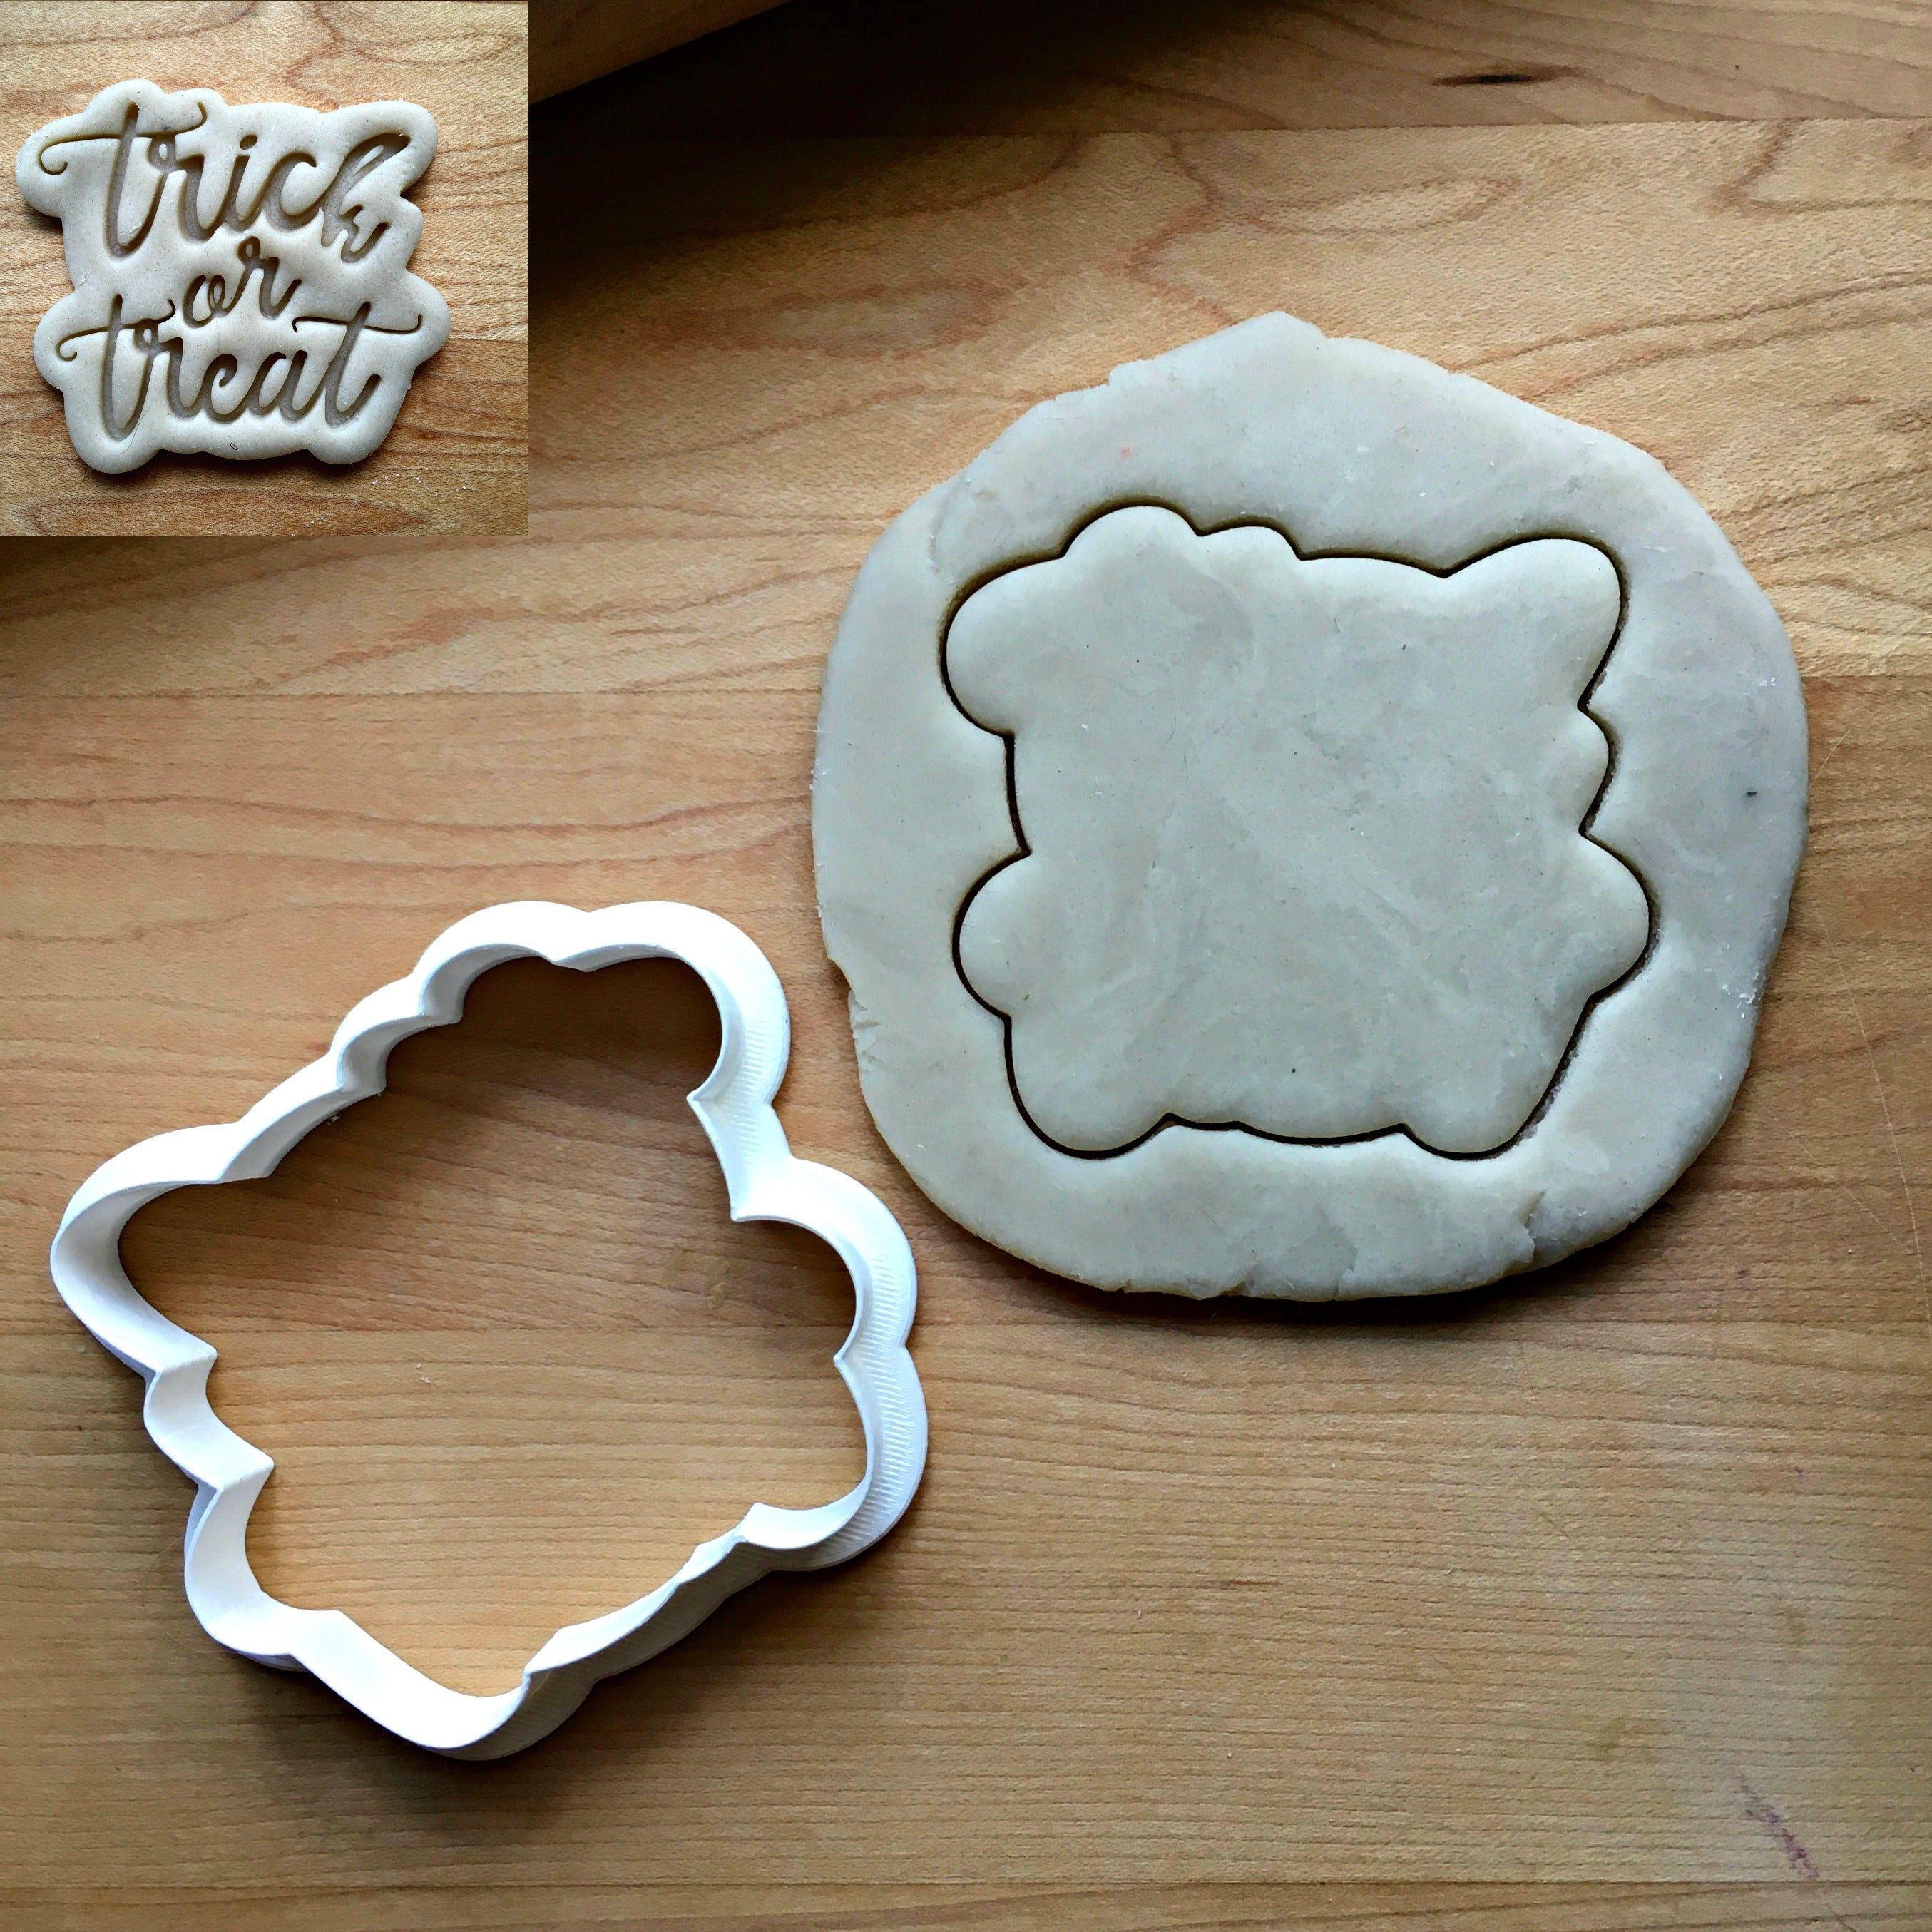 Trick or Treat Script Cookie Cutter/Dishwasher Safe